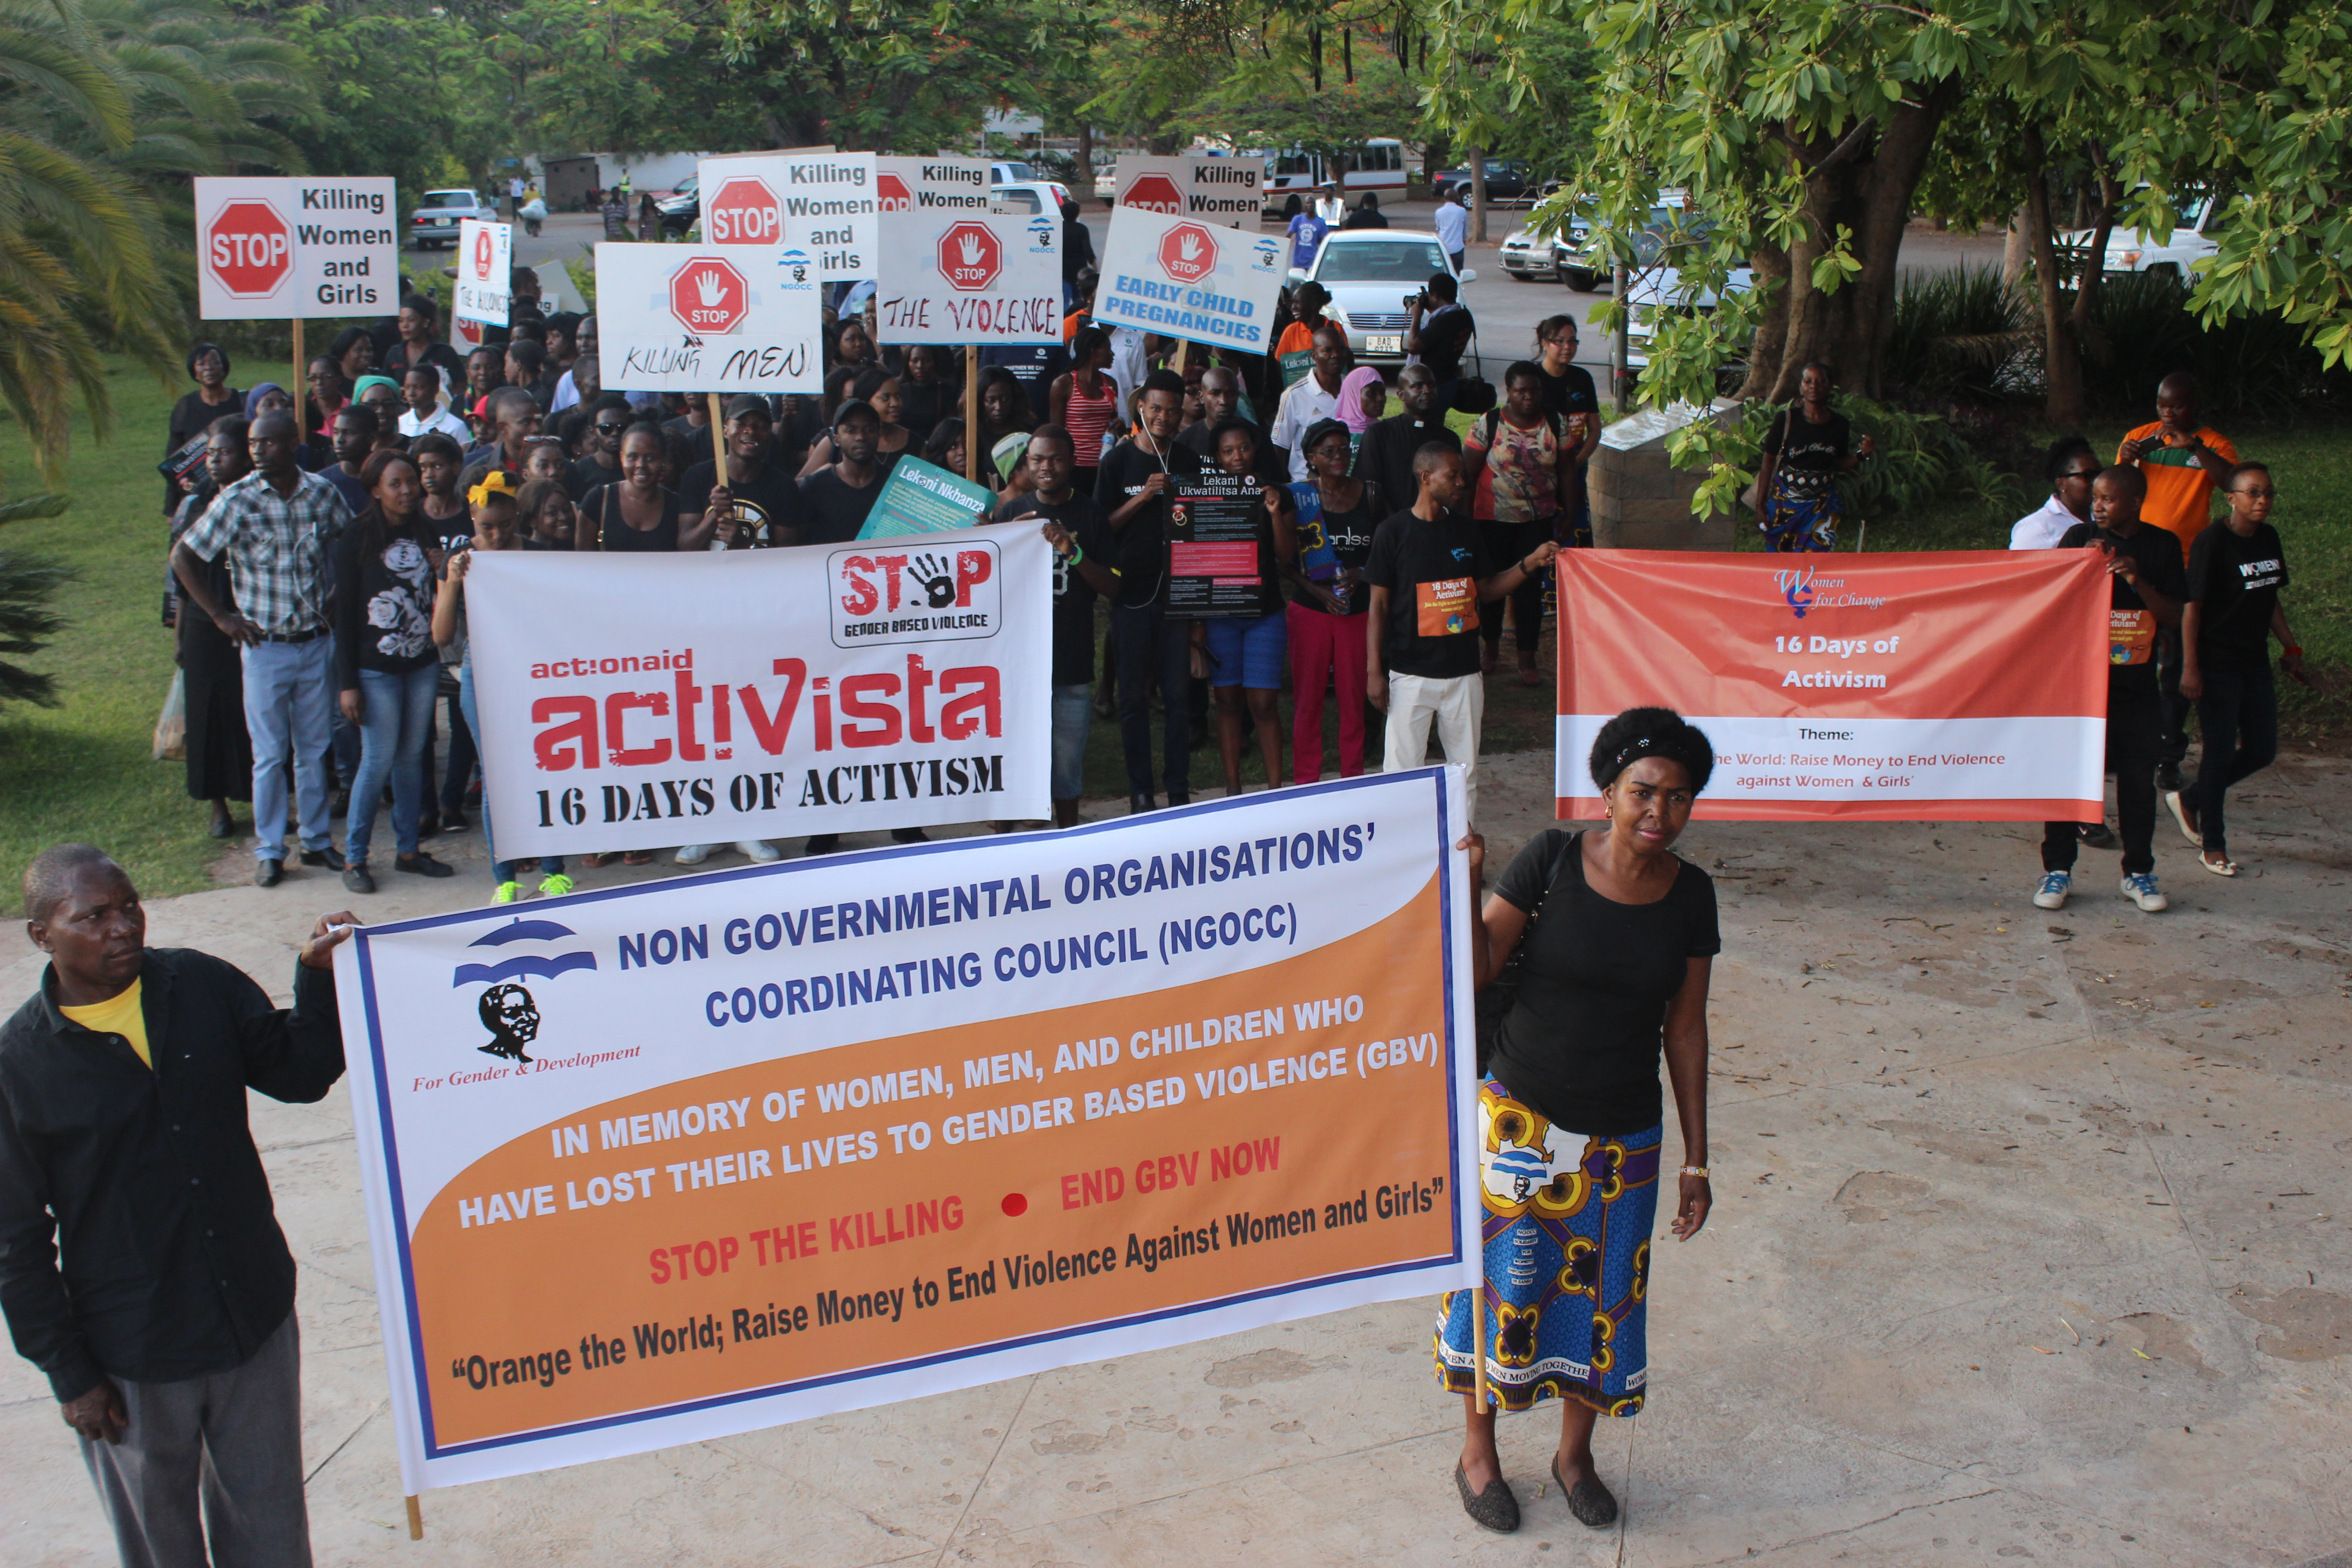 NGOCC HOLDS CANDLELIGHT SERVICE & MARCH PAST ON 16 DAYS AGAINST GBV.